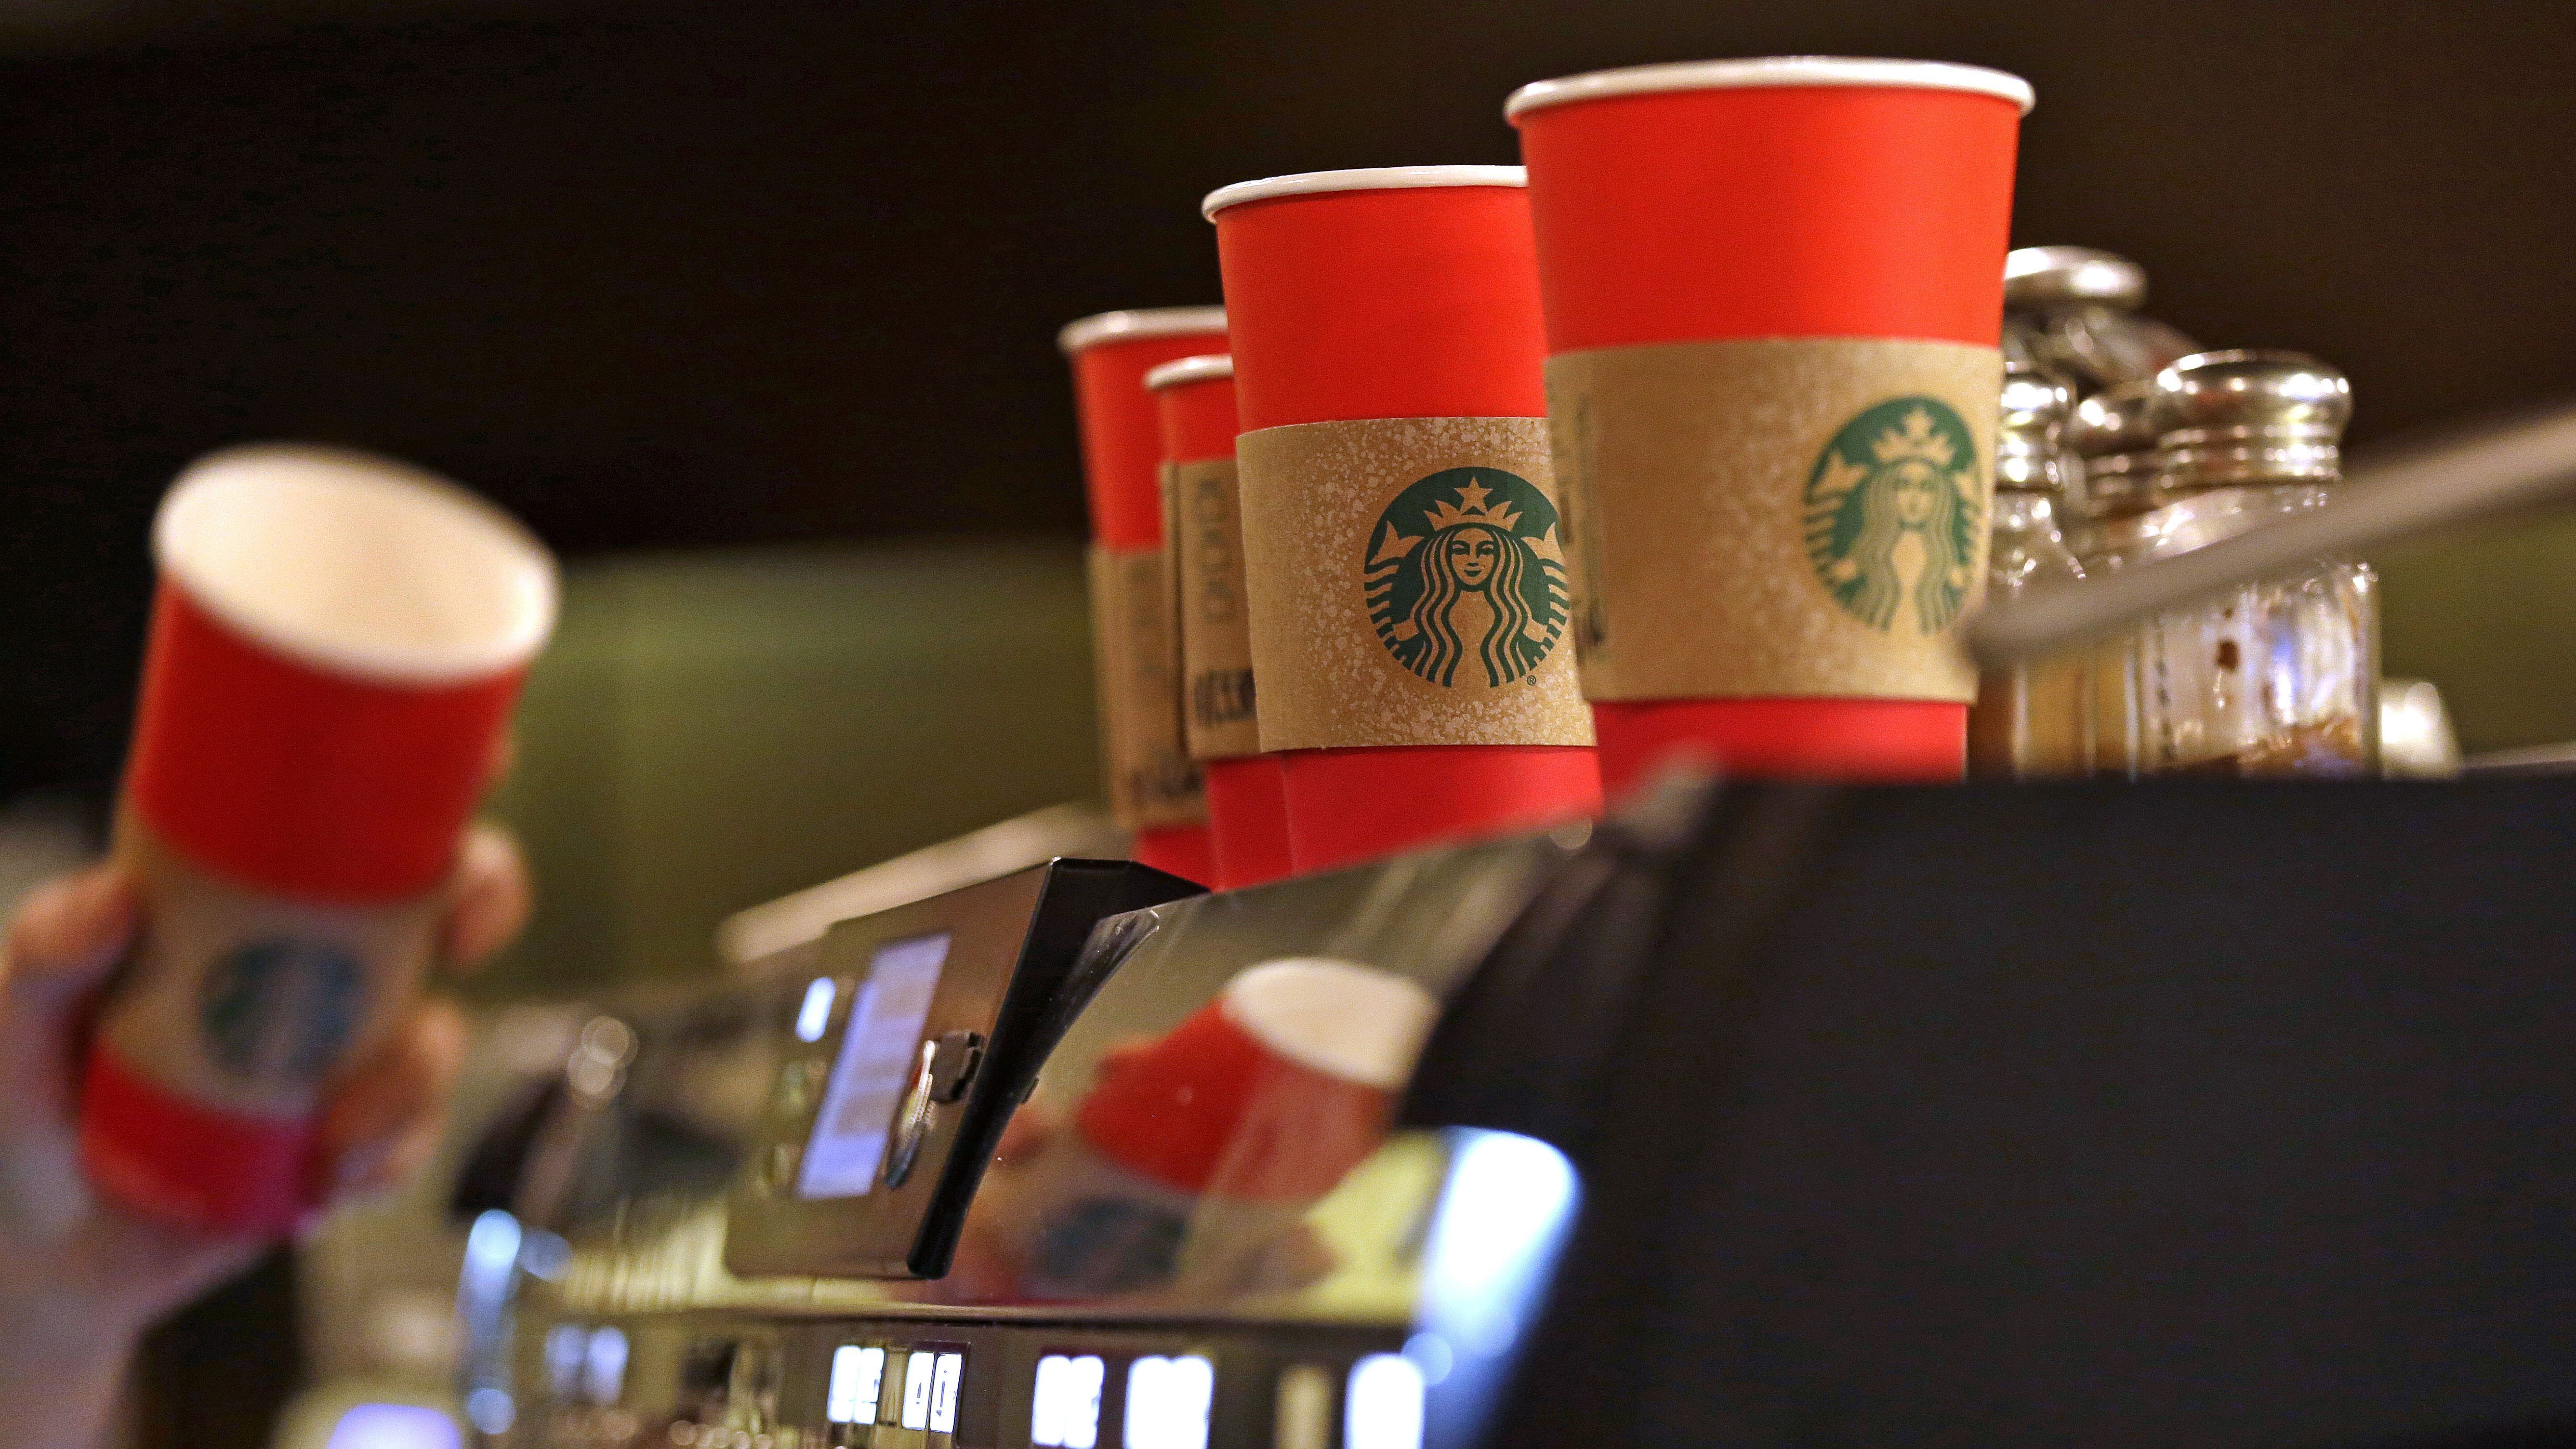 A barista reaches for a red paper cup as more, with cardboard liners already attached, line the top of an espresso machine at a Starbucks coffee shop in the Pike Place Market, Tuesday, Nov. 10, 2015,